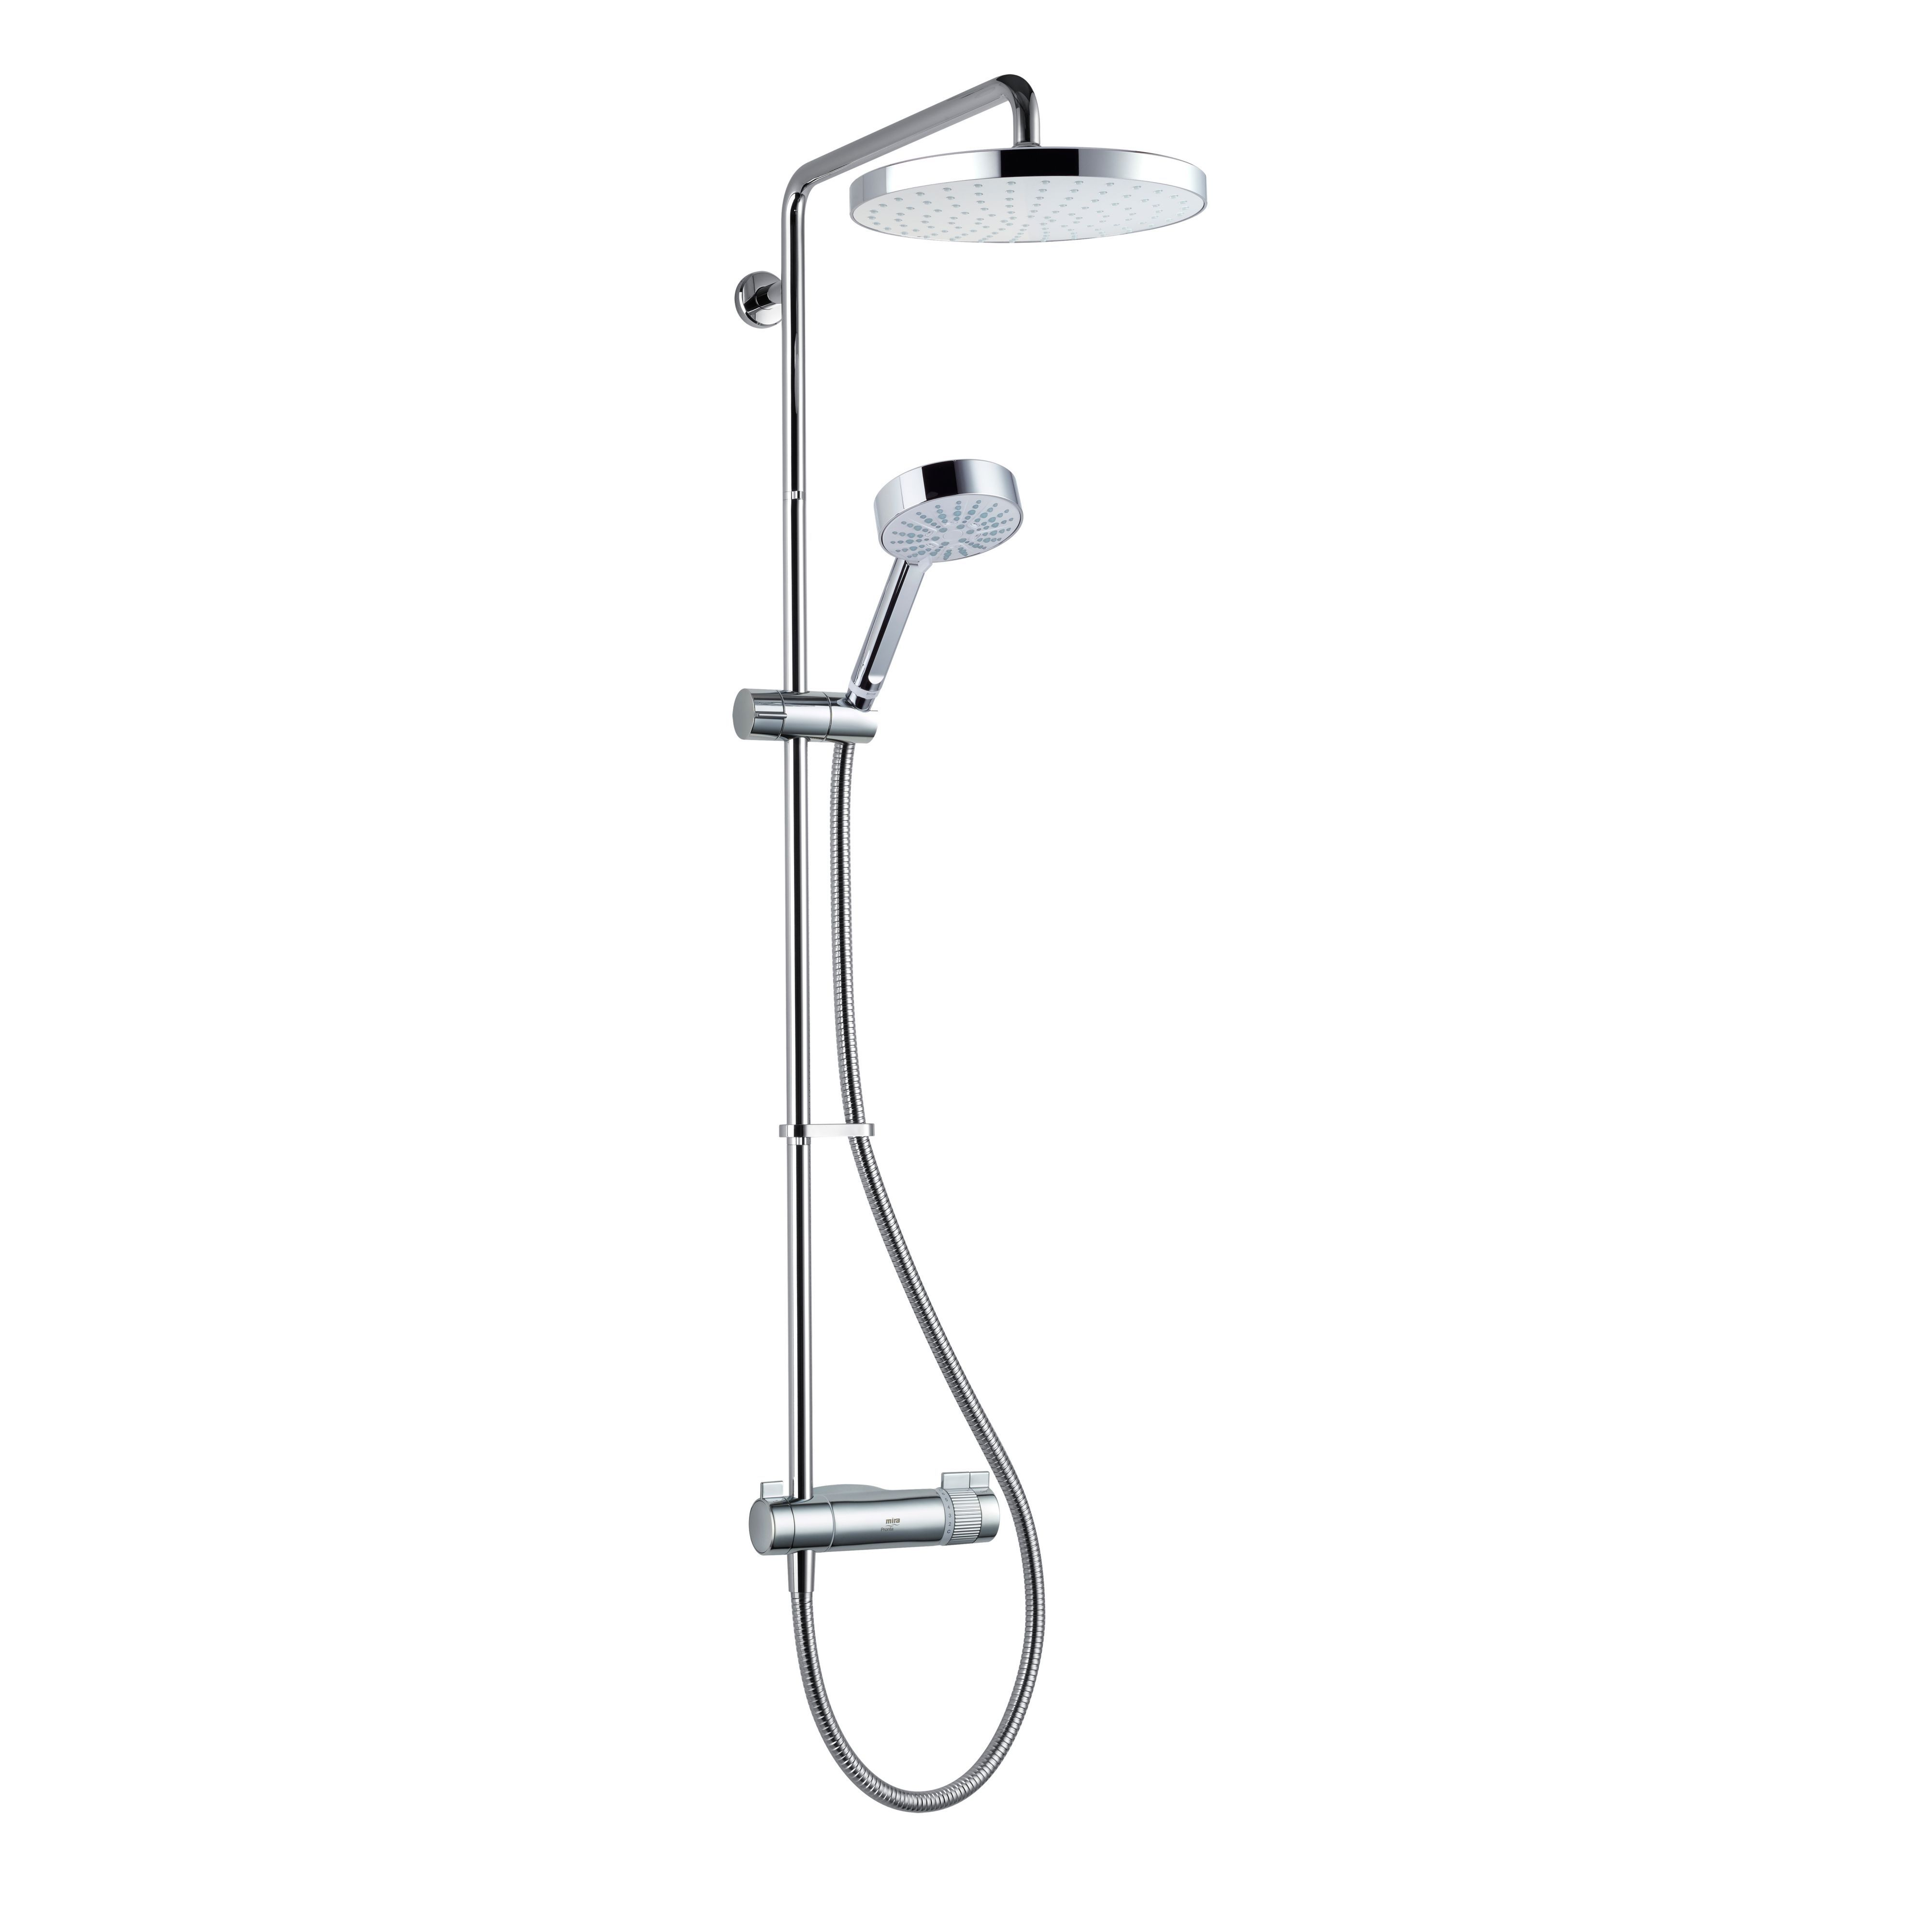 Kitchen Bar Stools Homebase: Mira Pronta+ ERD Chrome Thermostatic Bar Mixer Shower With